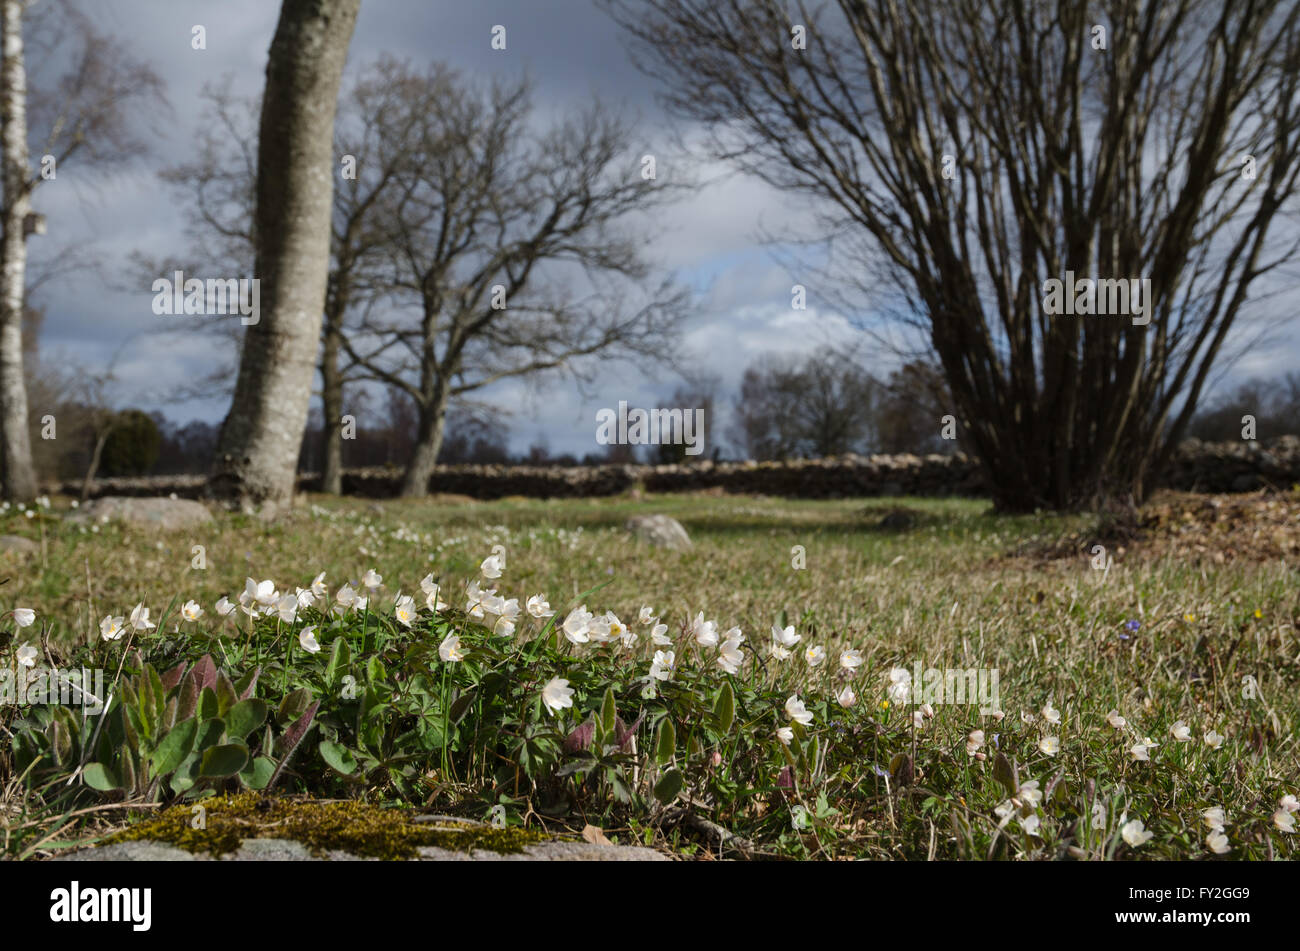 Springtime view with a low angle image of blossom windflowers in a sunny swedish pastureland - Stock Image